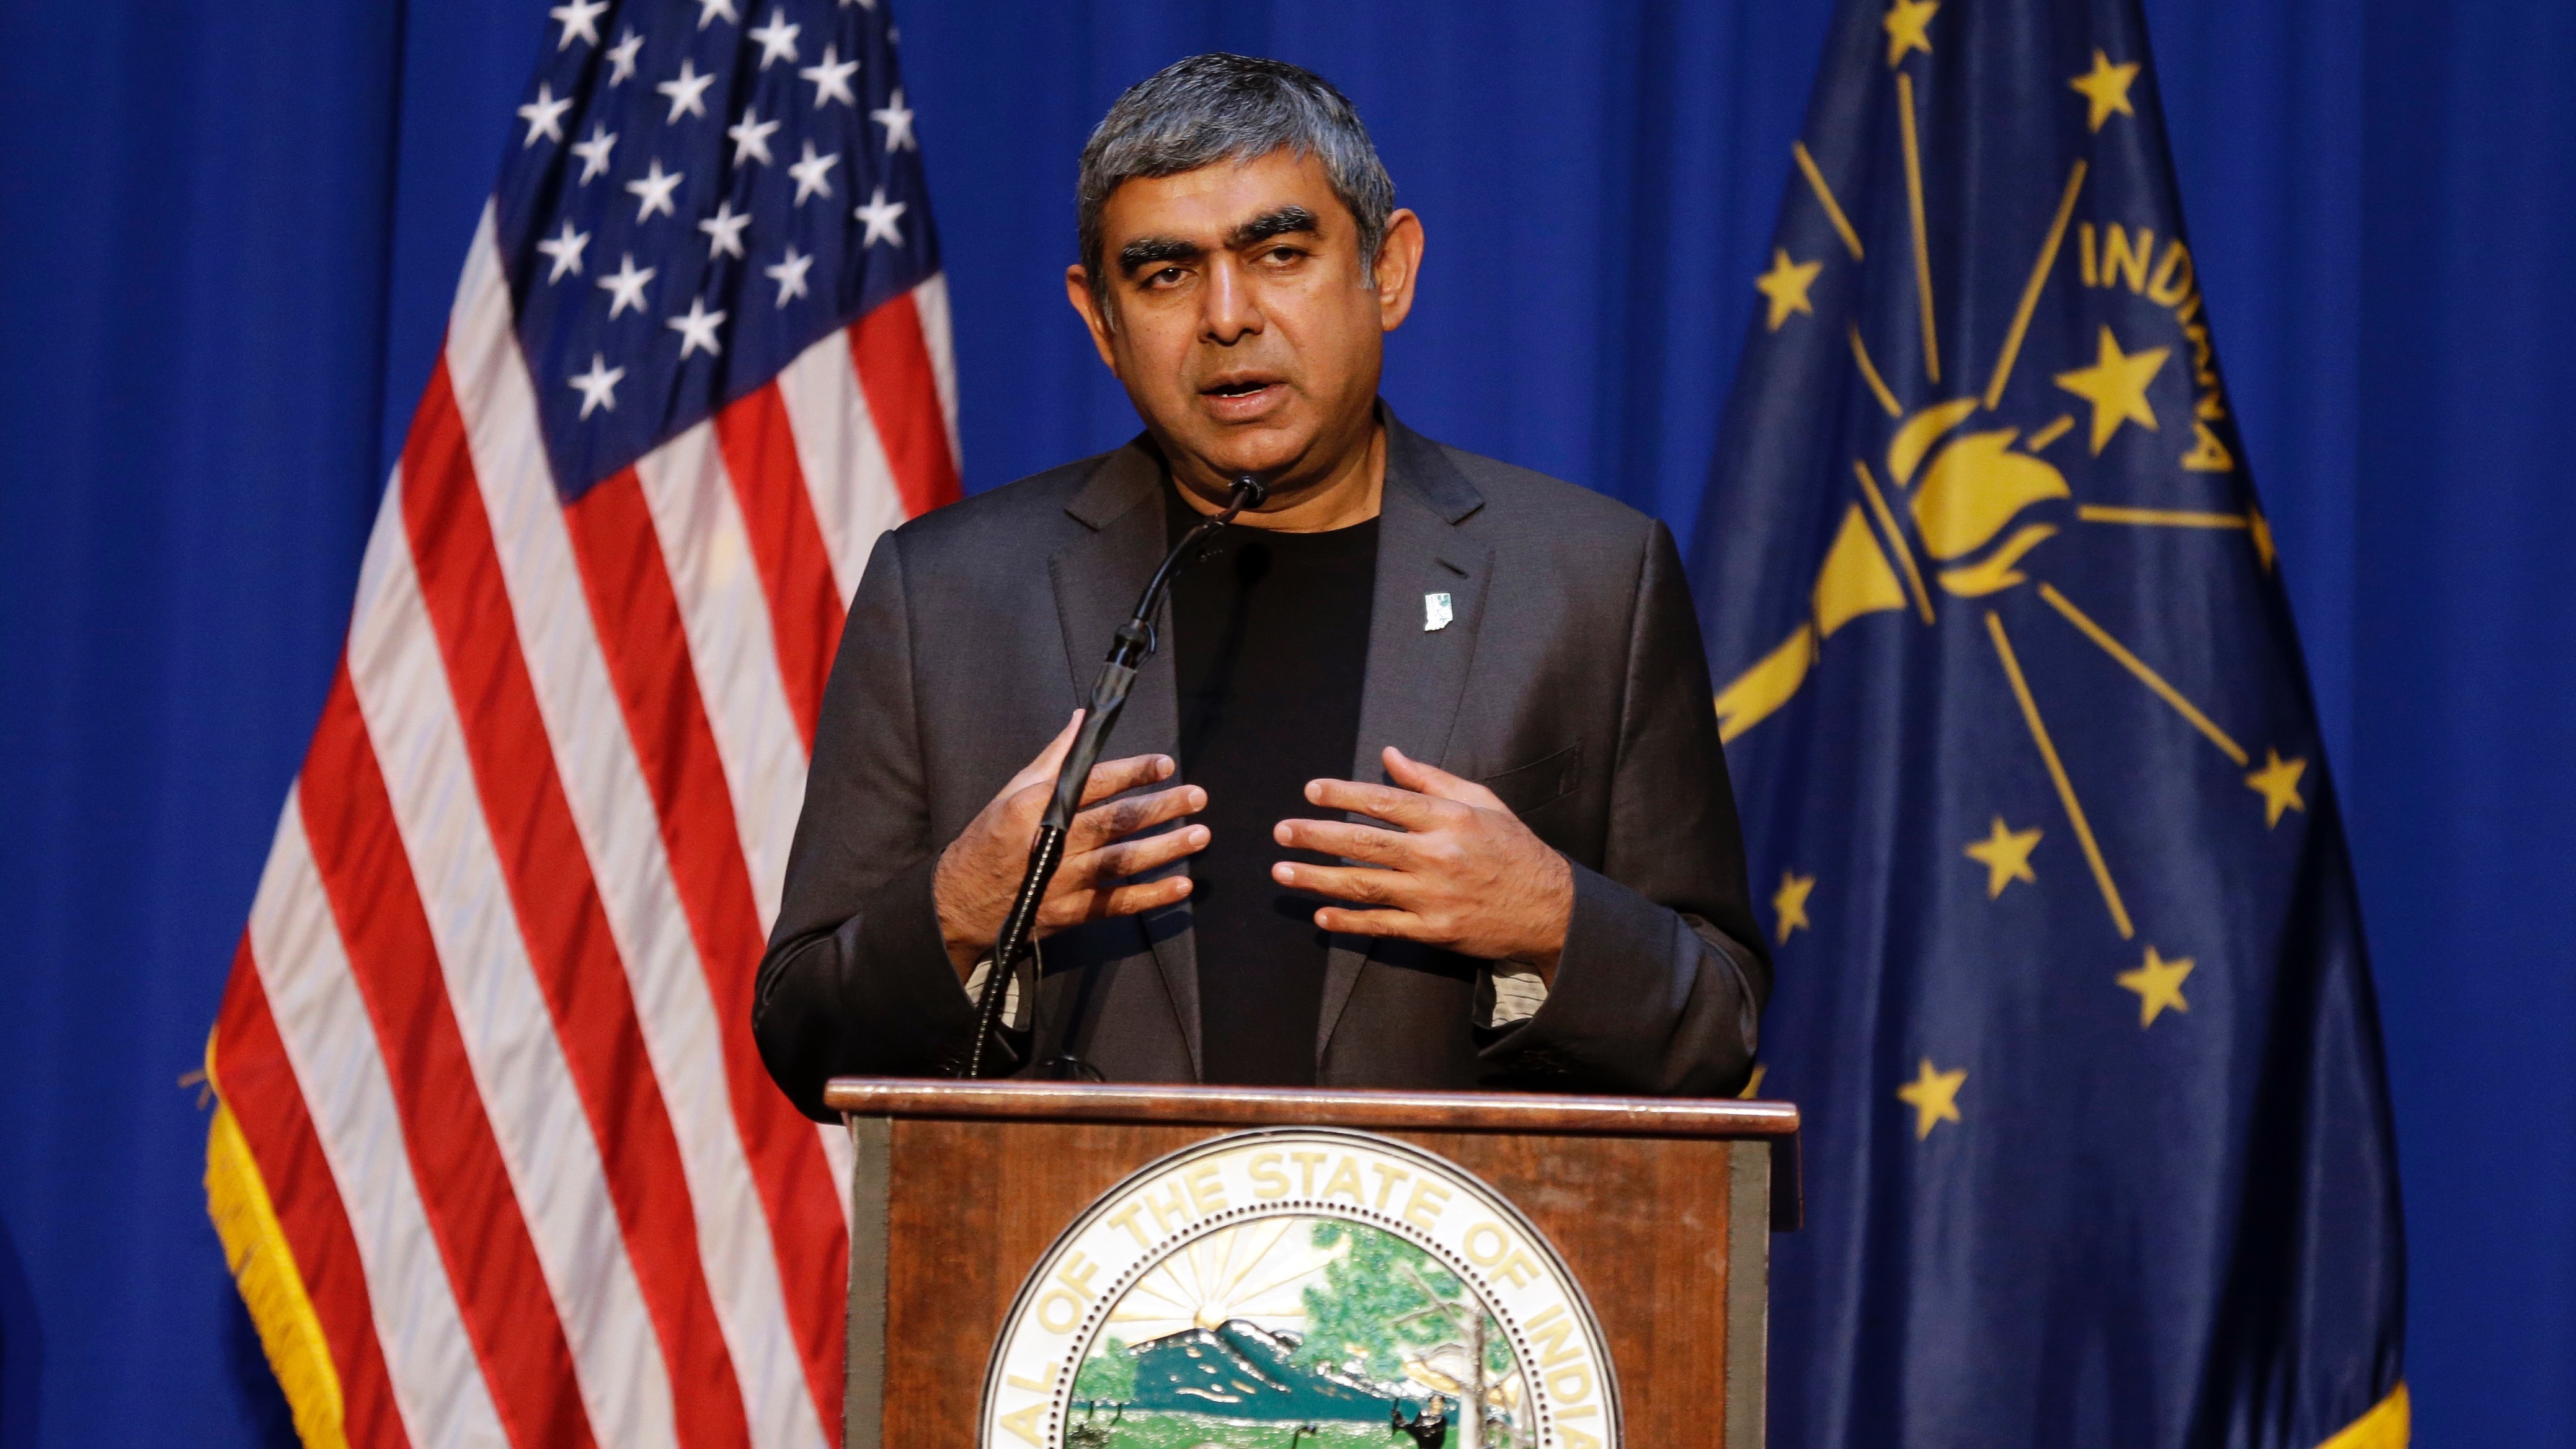 Dr. Vishal Sikka, chief executive officer of Infosys, announces at the Statehouse in Indianapolis, Tuesday, May 2, 2017 plans to increase its operations in the U.S, establishing four new state-of-the-art technology and innovation hubs in the U.S., with the first one in Indiana. (AP Photo/Michael Conroy)